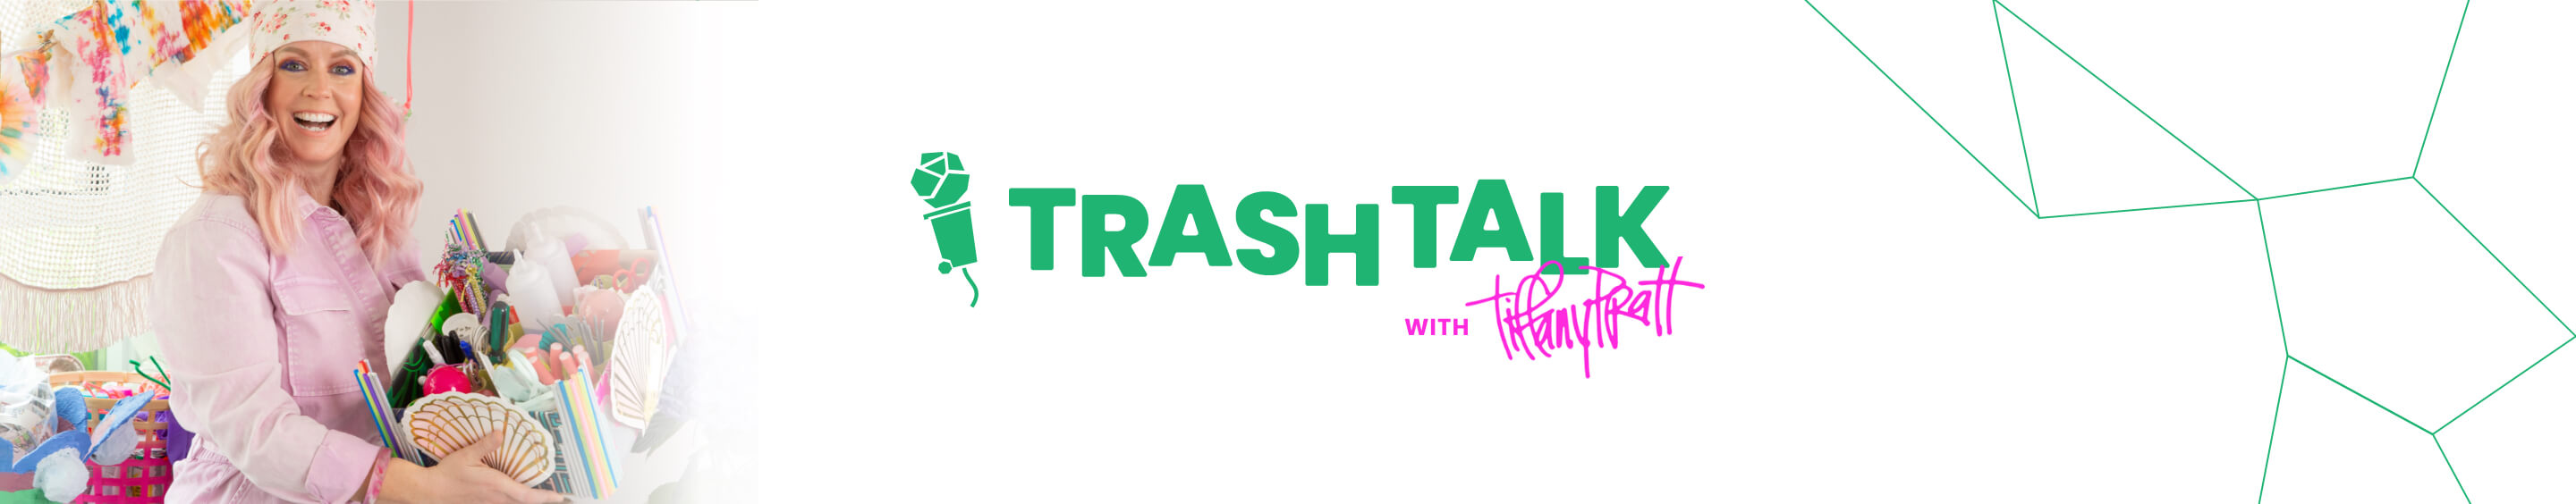 TrashTalk with Tiffany Prat Episode 1 Blog header